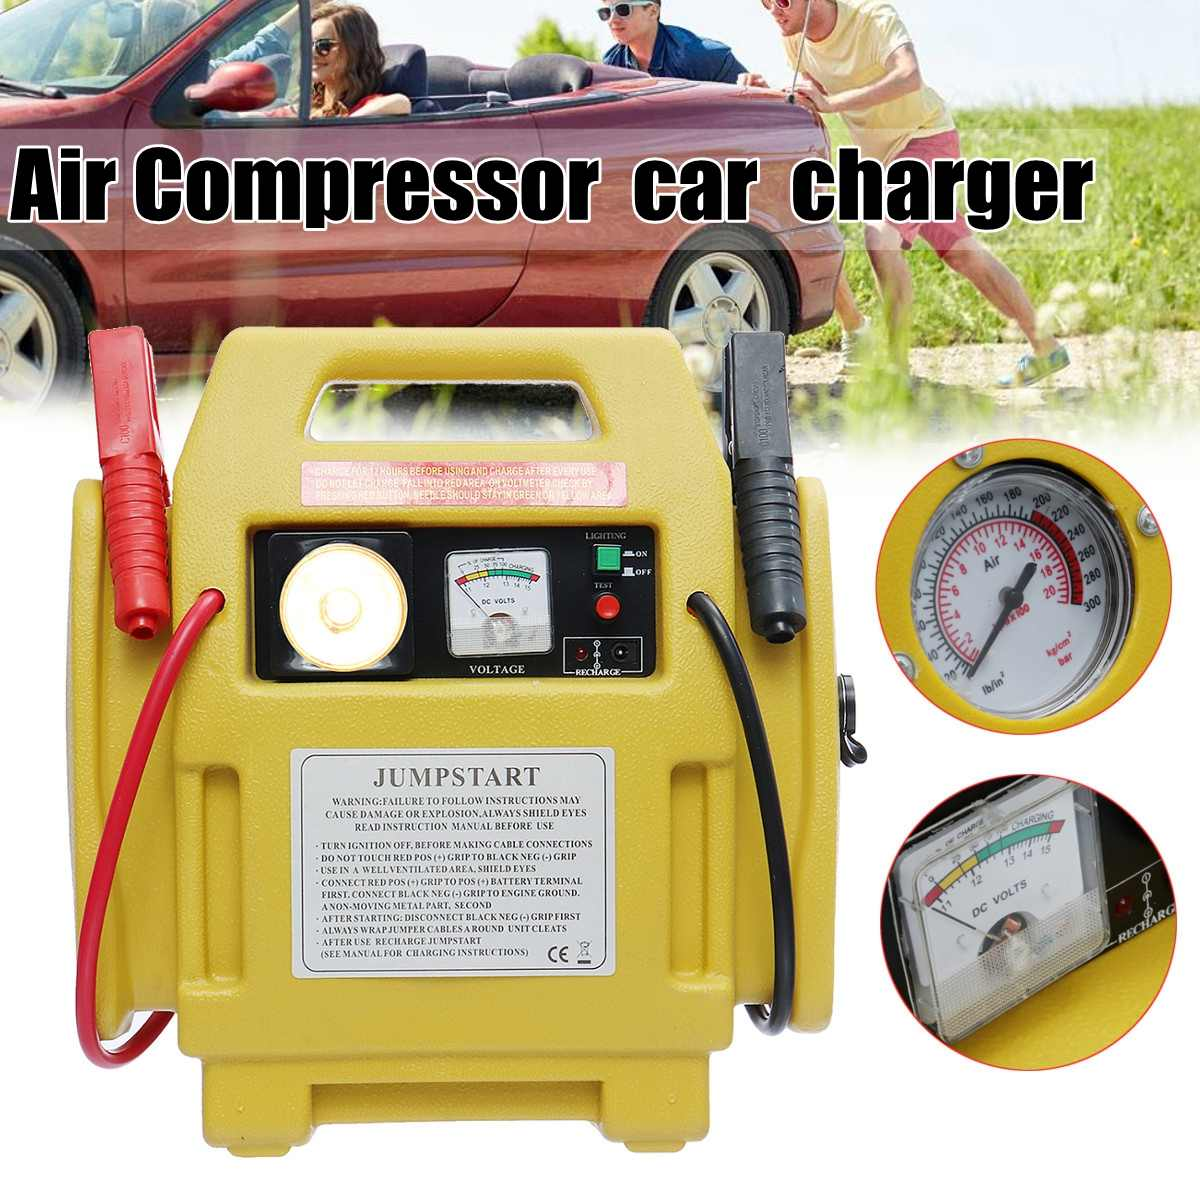 Car Jump Starter Booster 12V Car Battery Charger Starting Power Bank Tool Kit Air Compressor with Emergency LED Light Auto Pumps